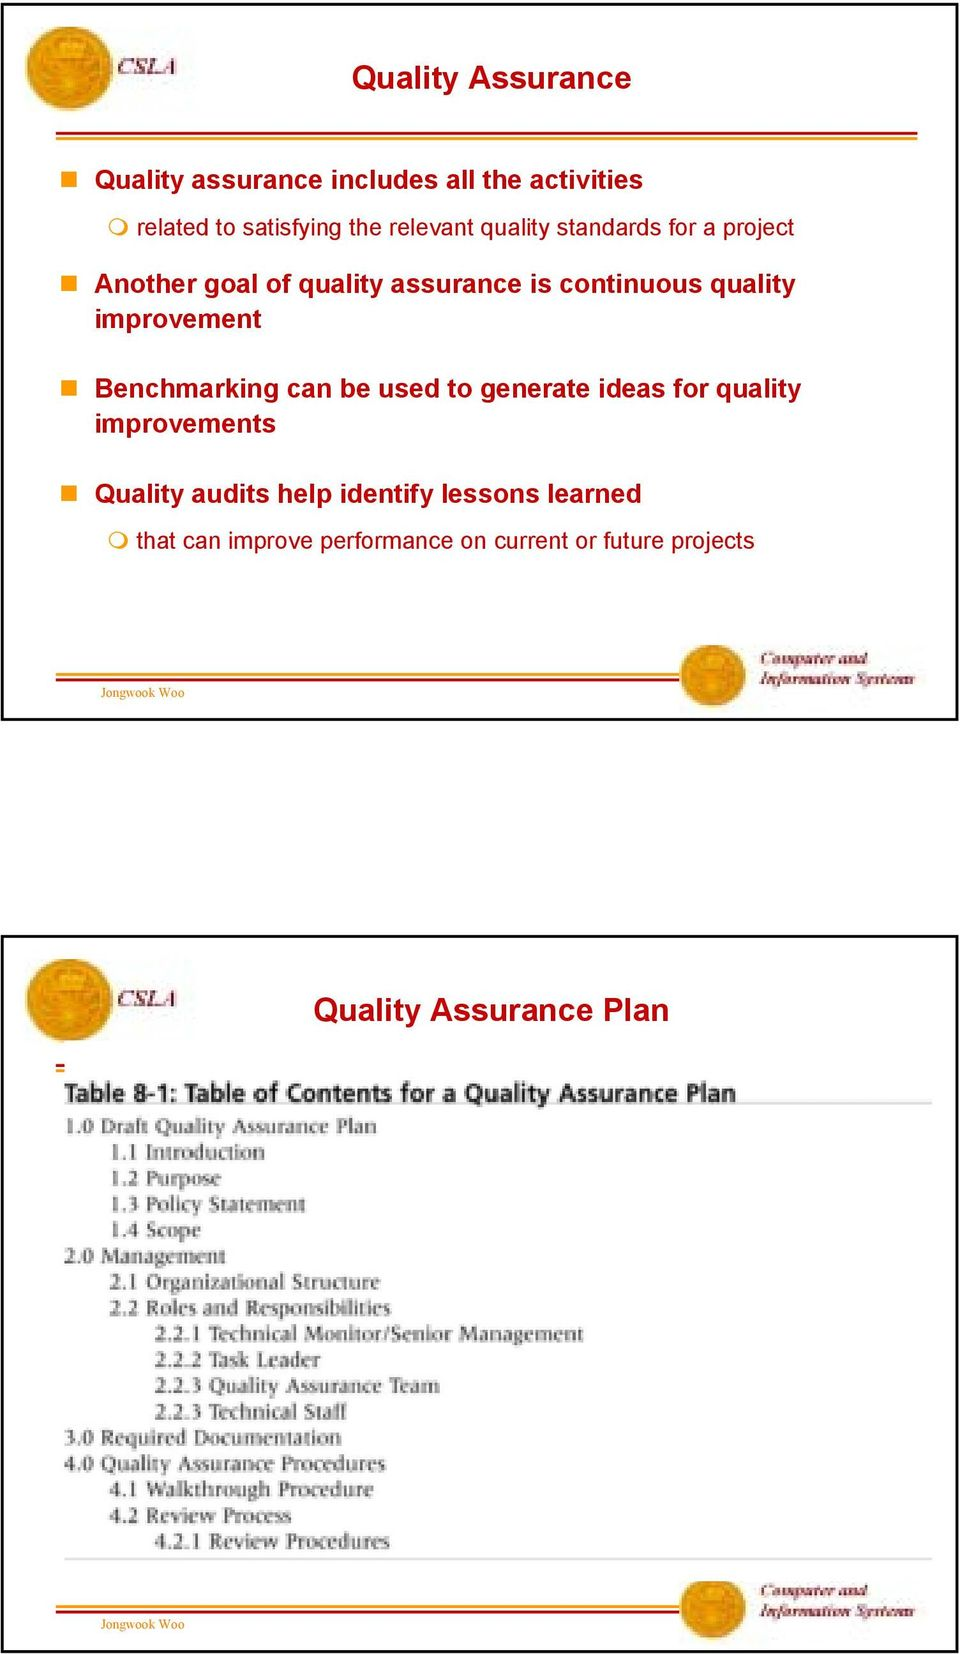 improvement Benchmarking can be used to generate ideas for quality improvements Quality audits